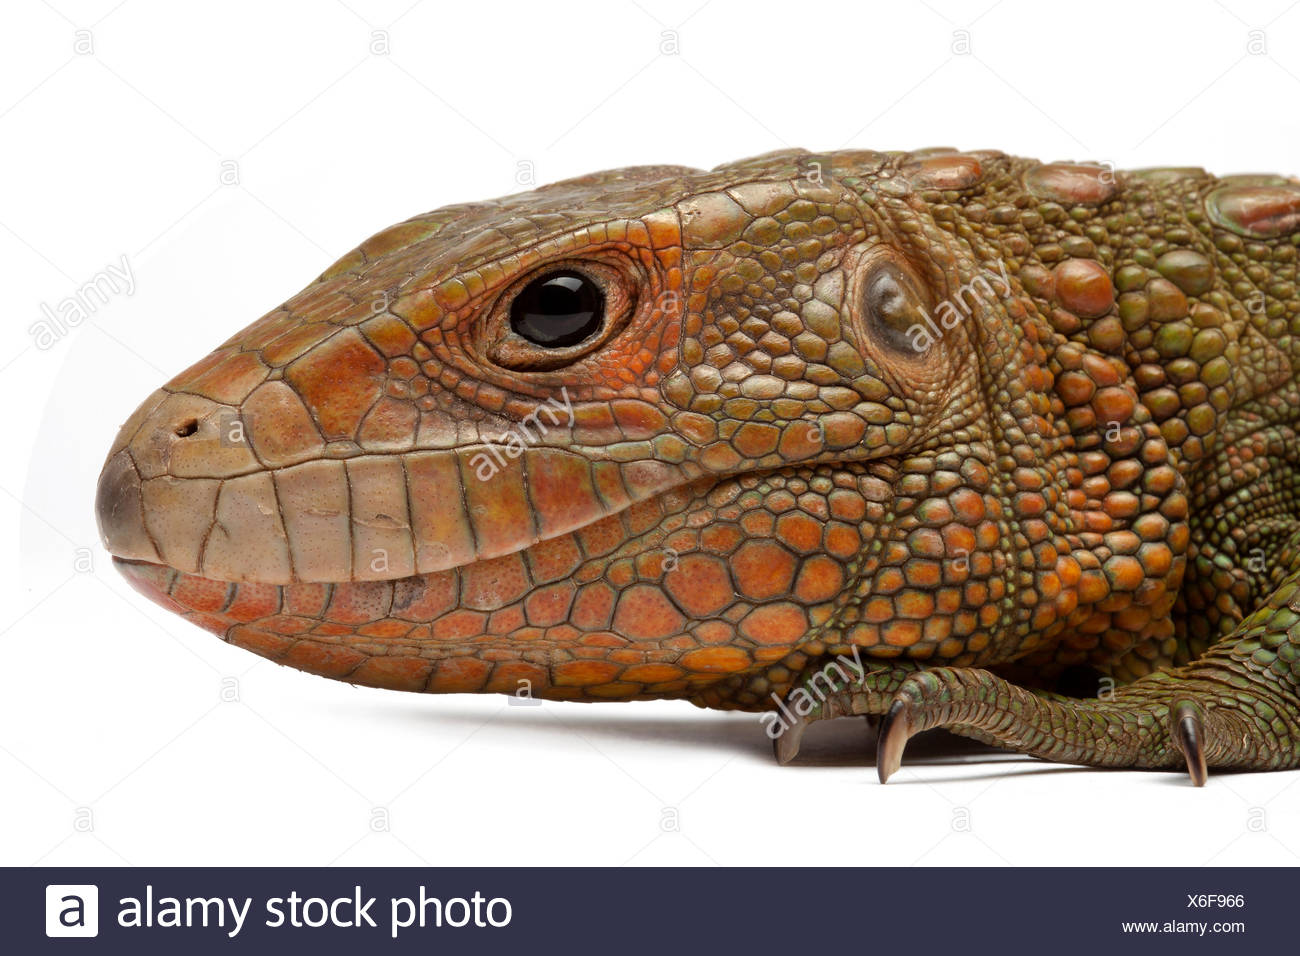 Portrait of Guyana Caiman Lizard on white background Native to South America - Stock Image